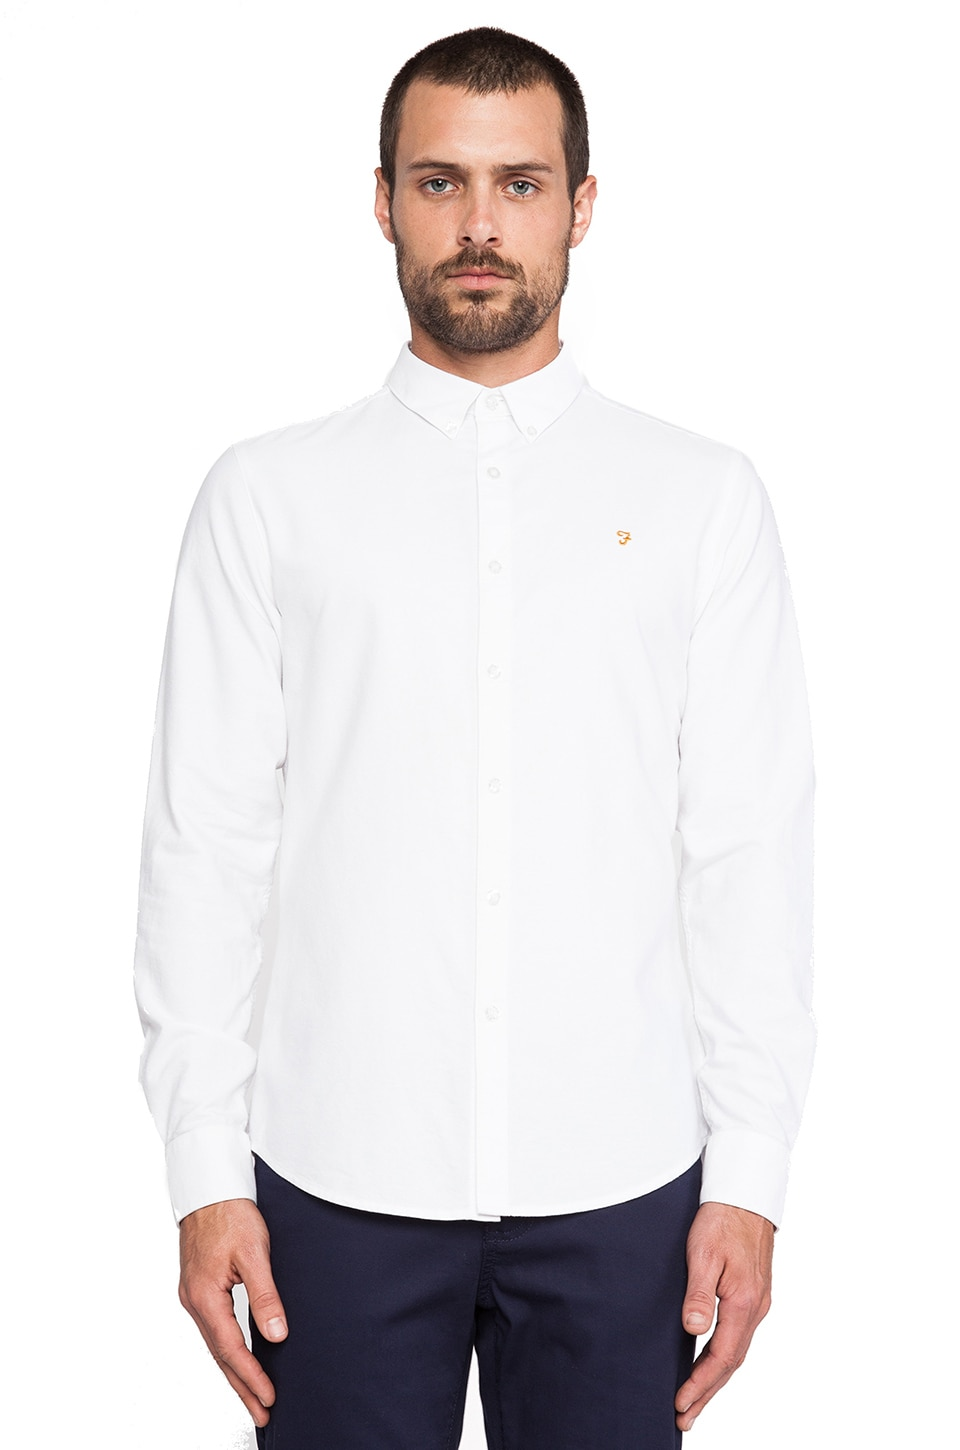 FARAH VINTAGE The Brewer in White